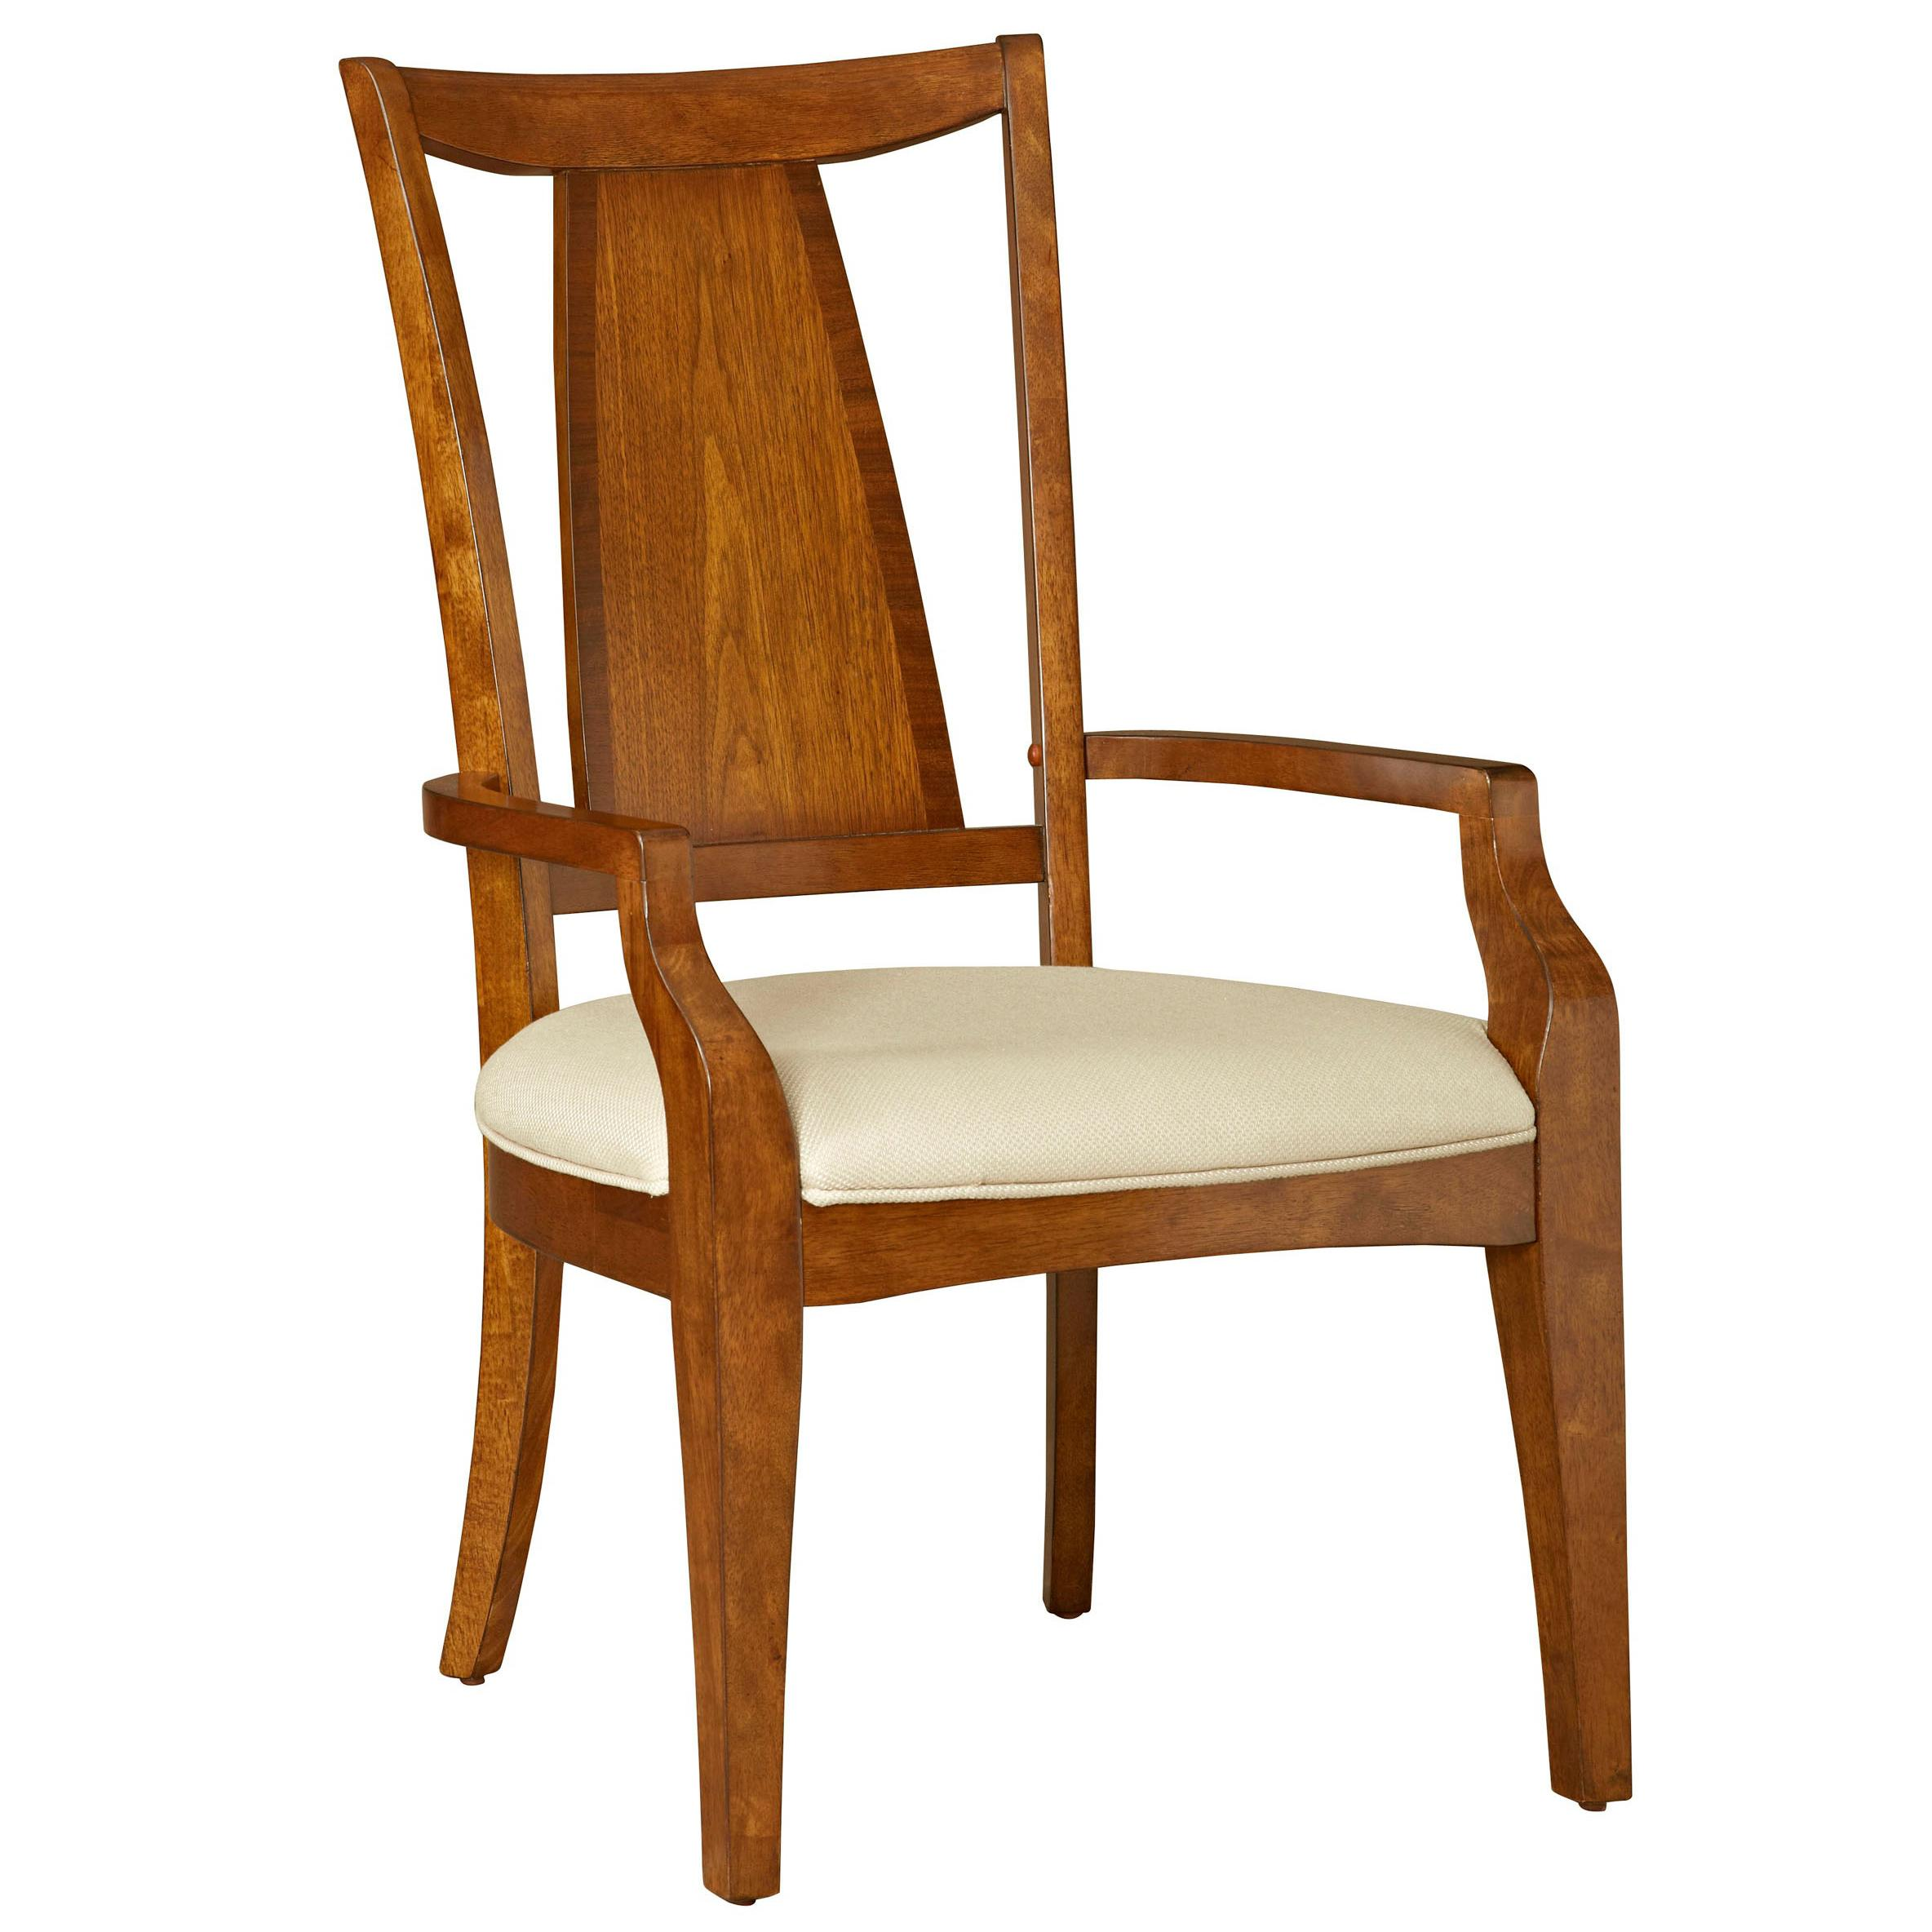 Broyhill Furniture Mardella Arm Chair - Item Number: 4277-580